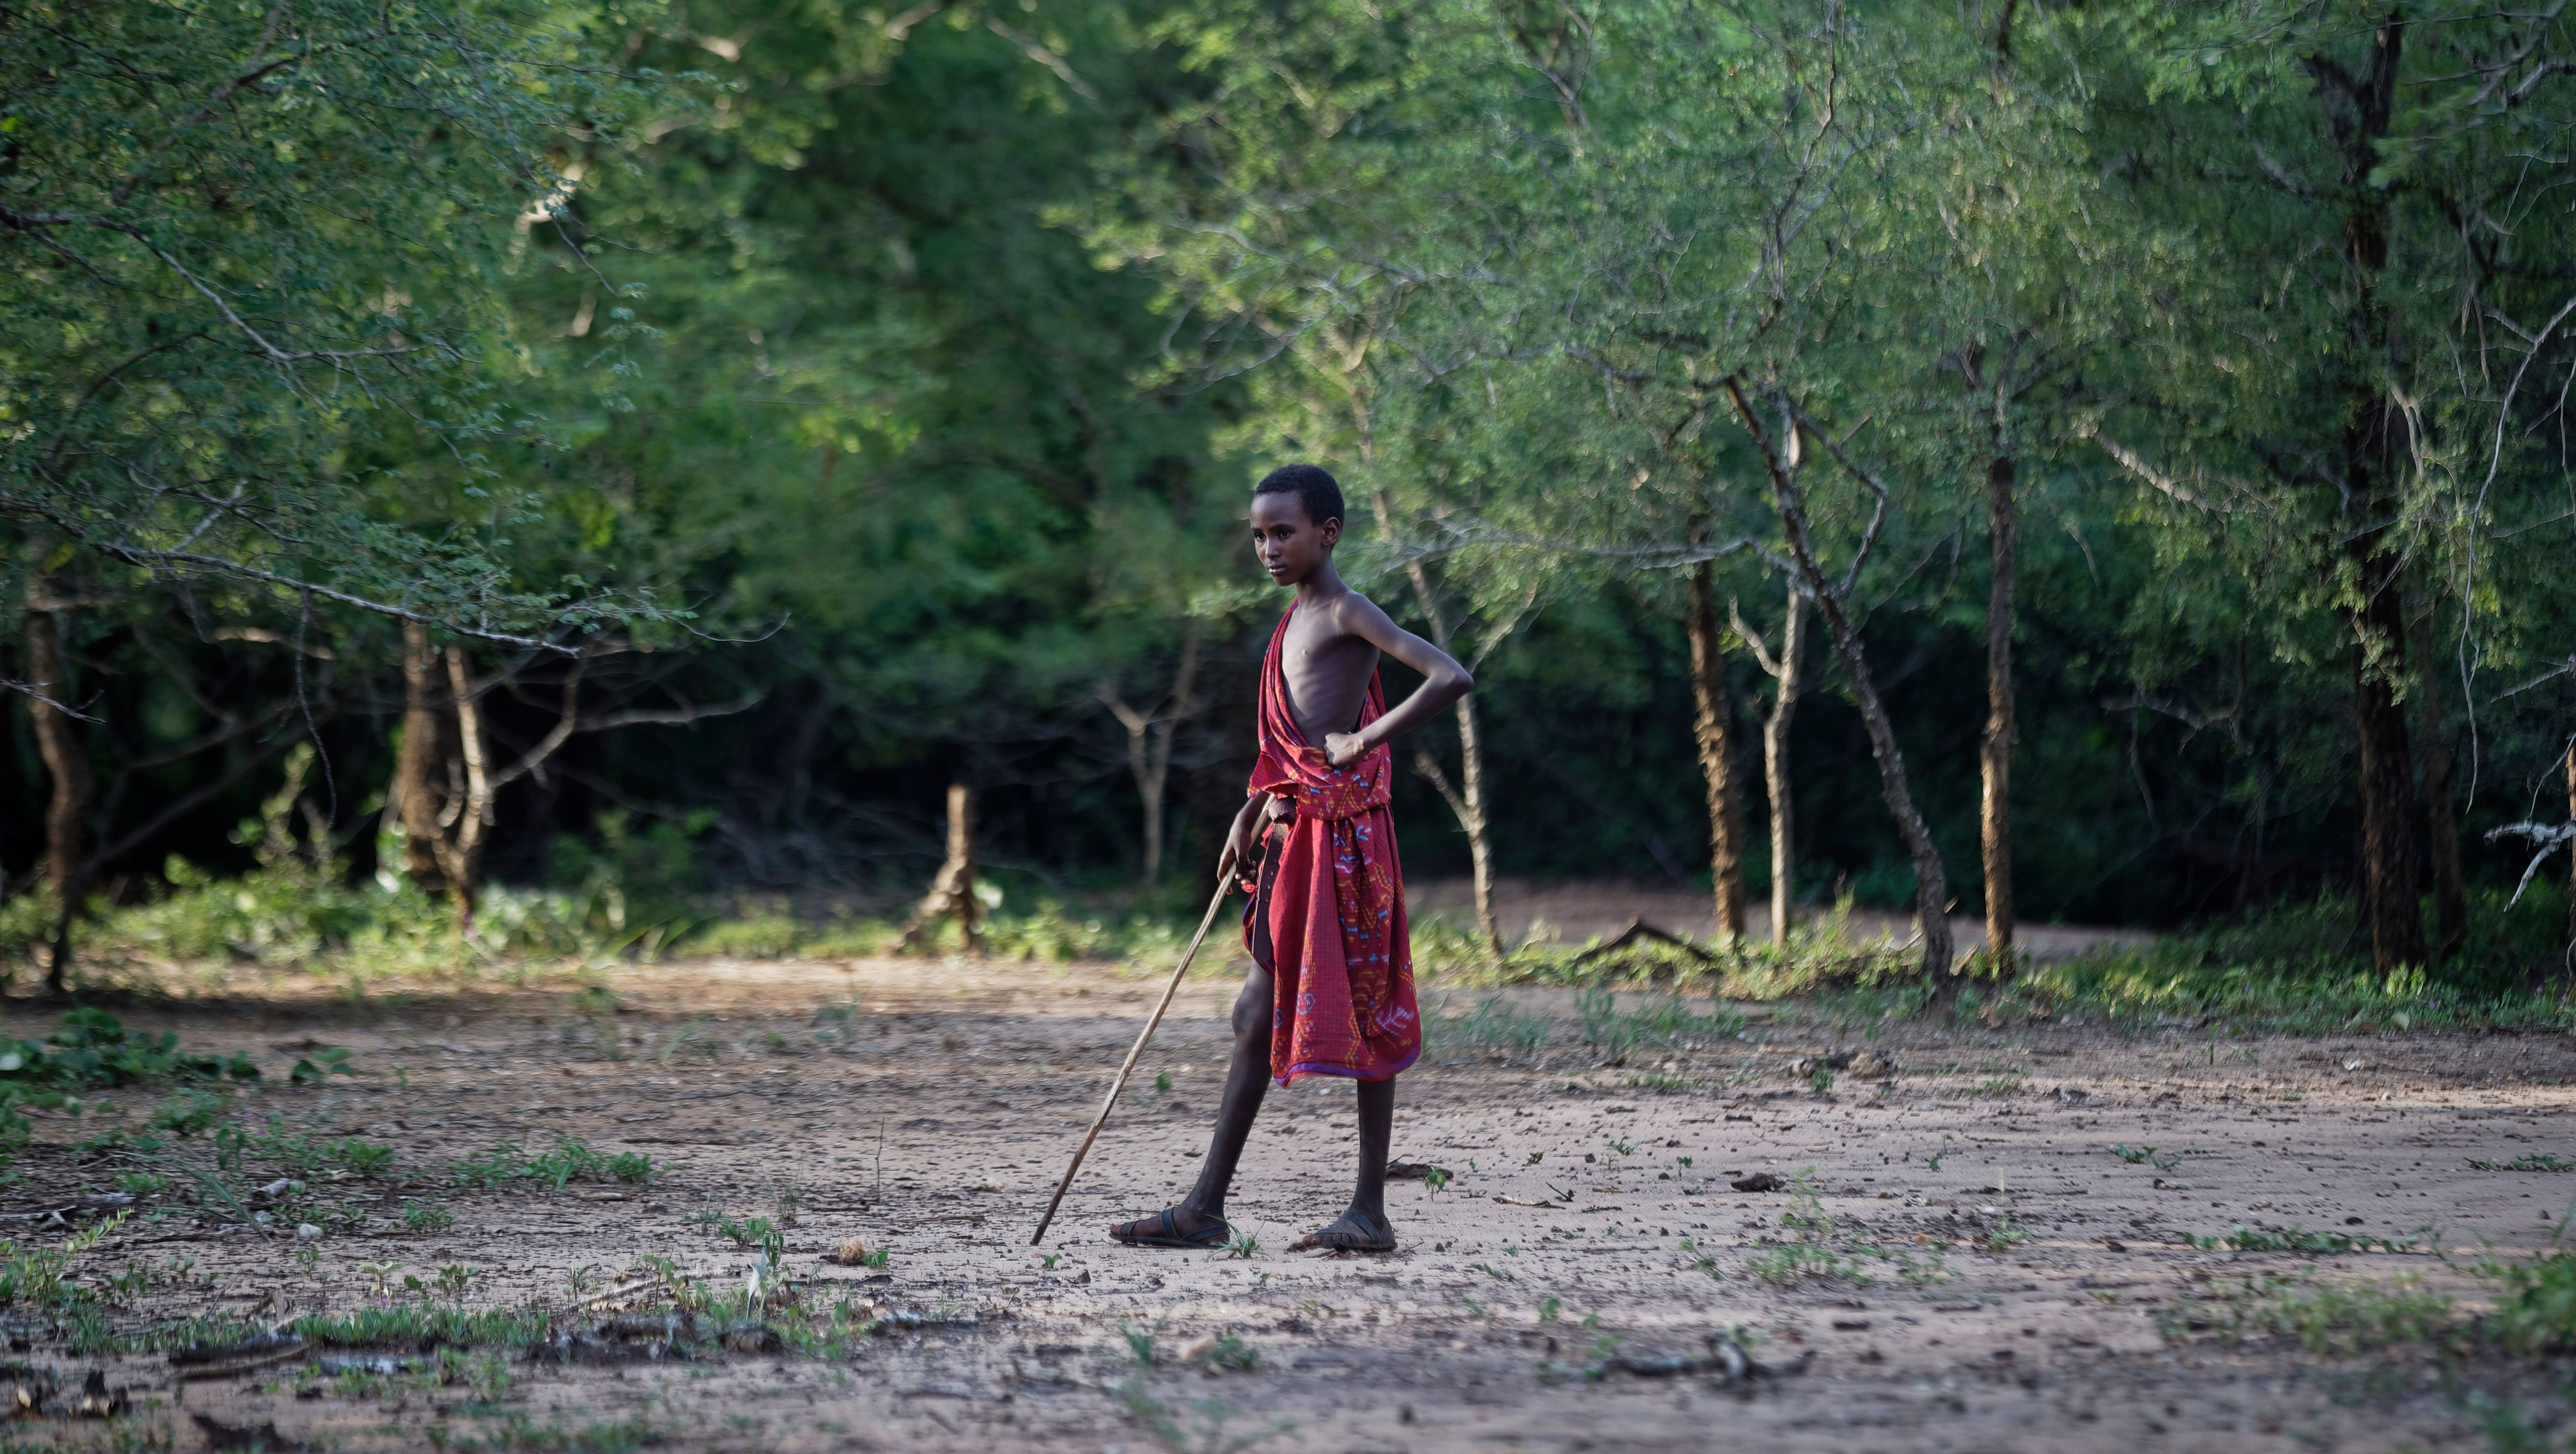 Maasai evicted in Tanzania for ecotourism and land conservation